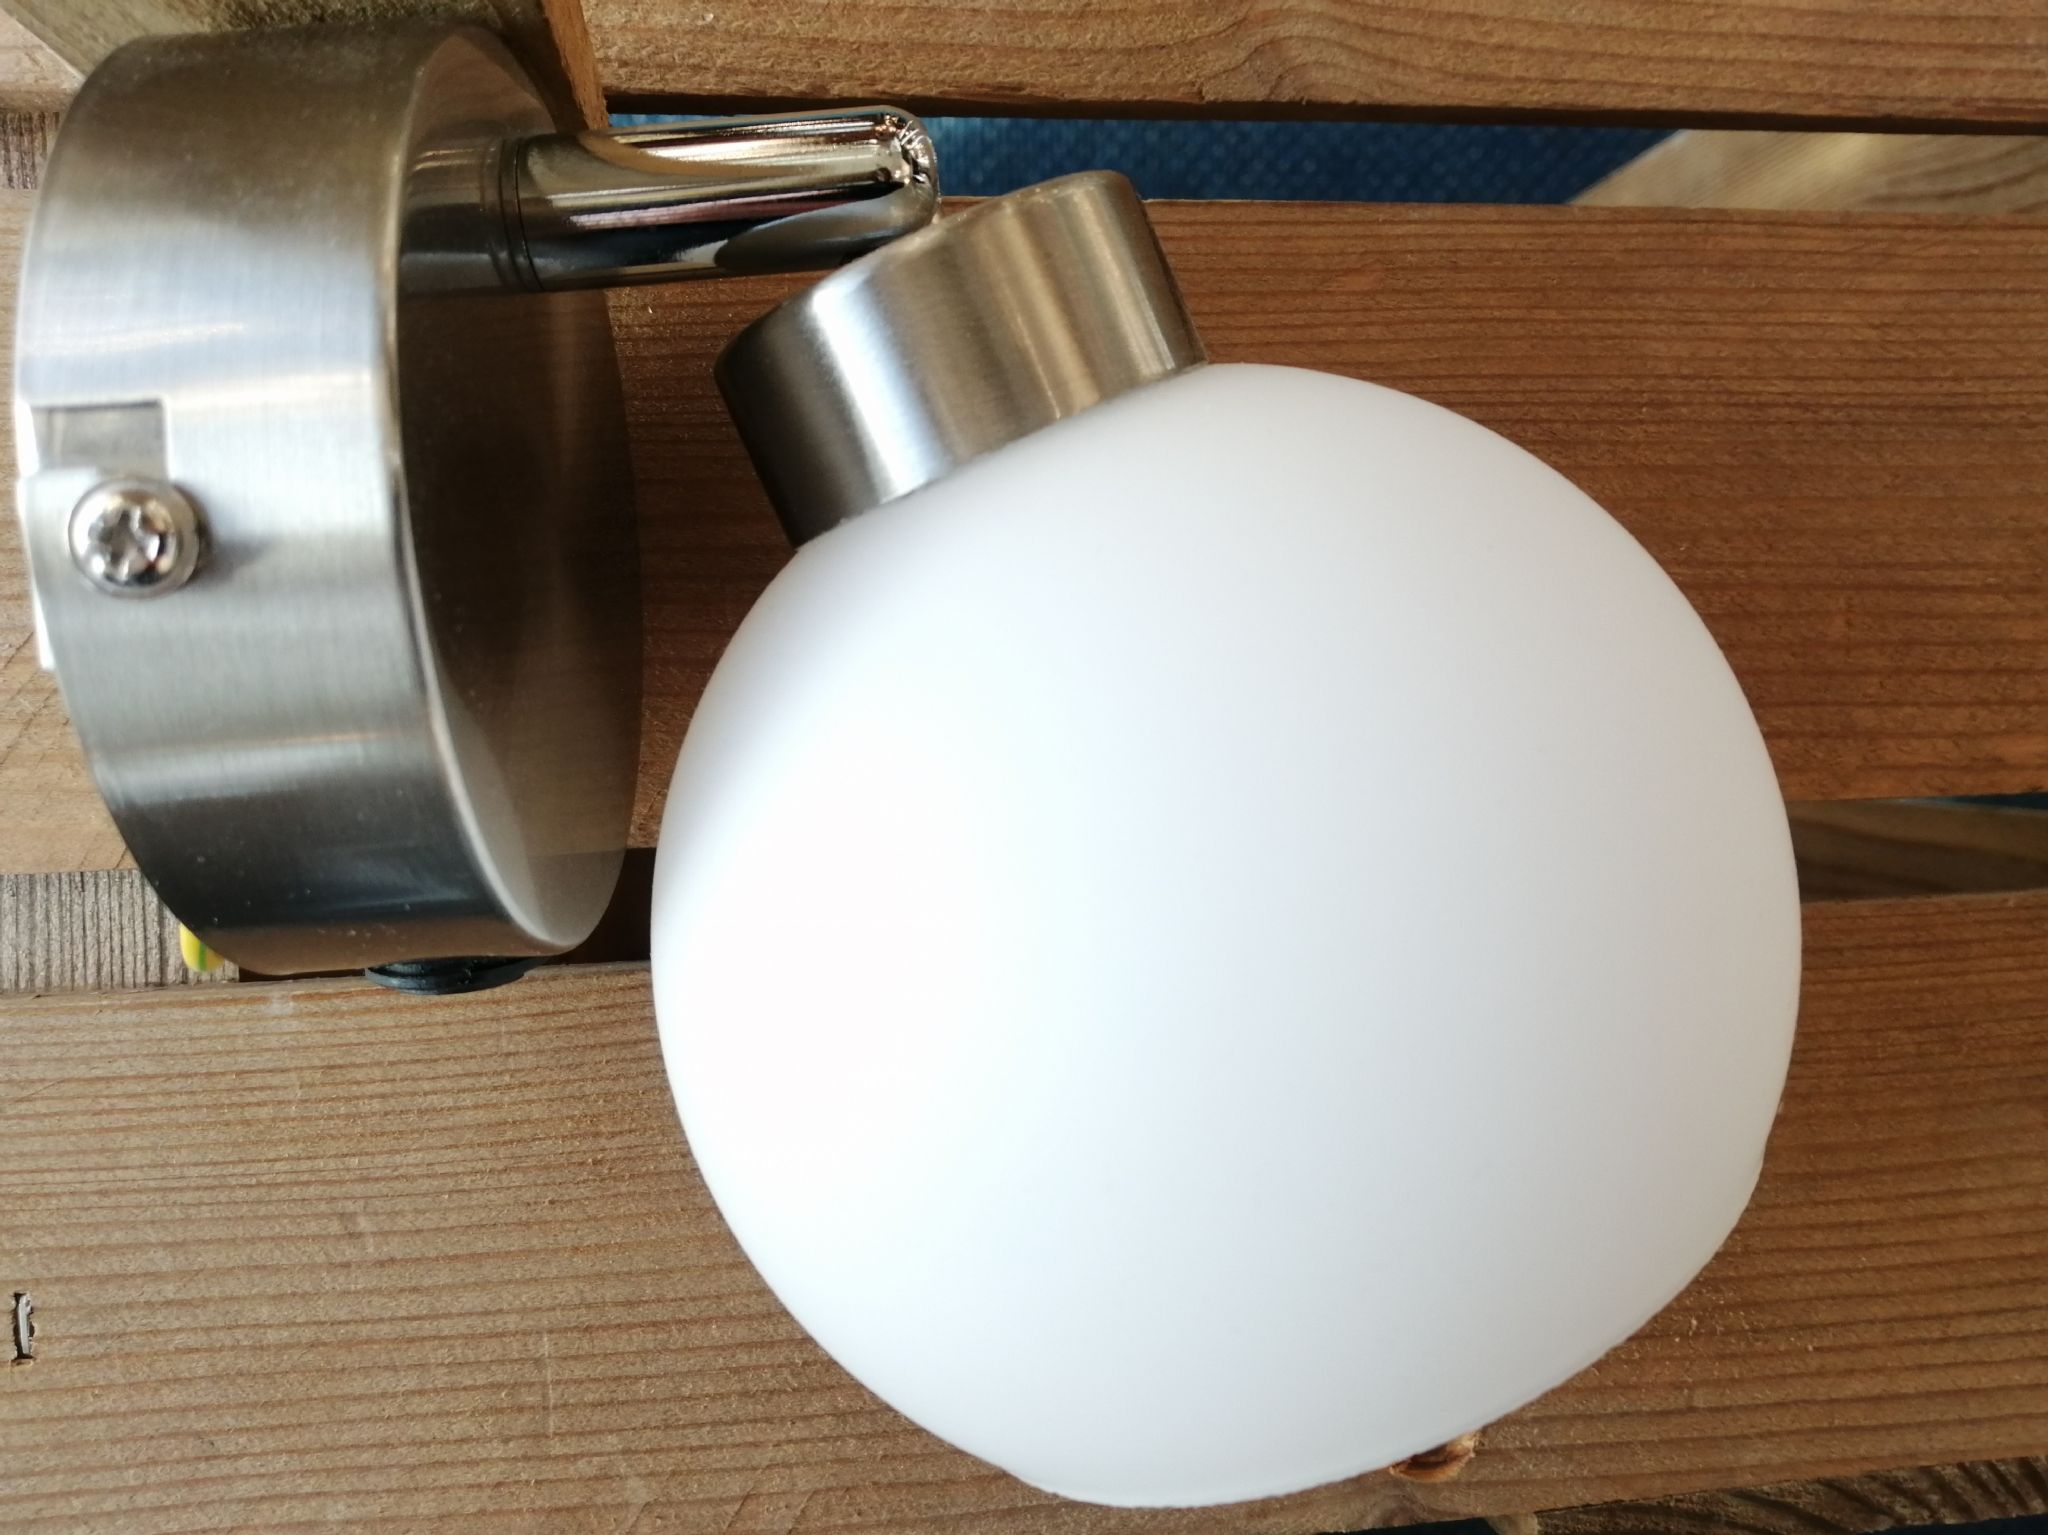 Leuchten Bilder Lotta Single Wall Light In Satin Chrome With An Opal Glass Shade - Leuchten Direkt Ex-display